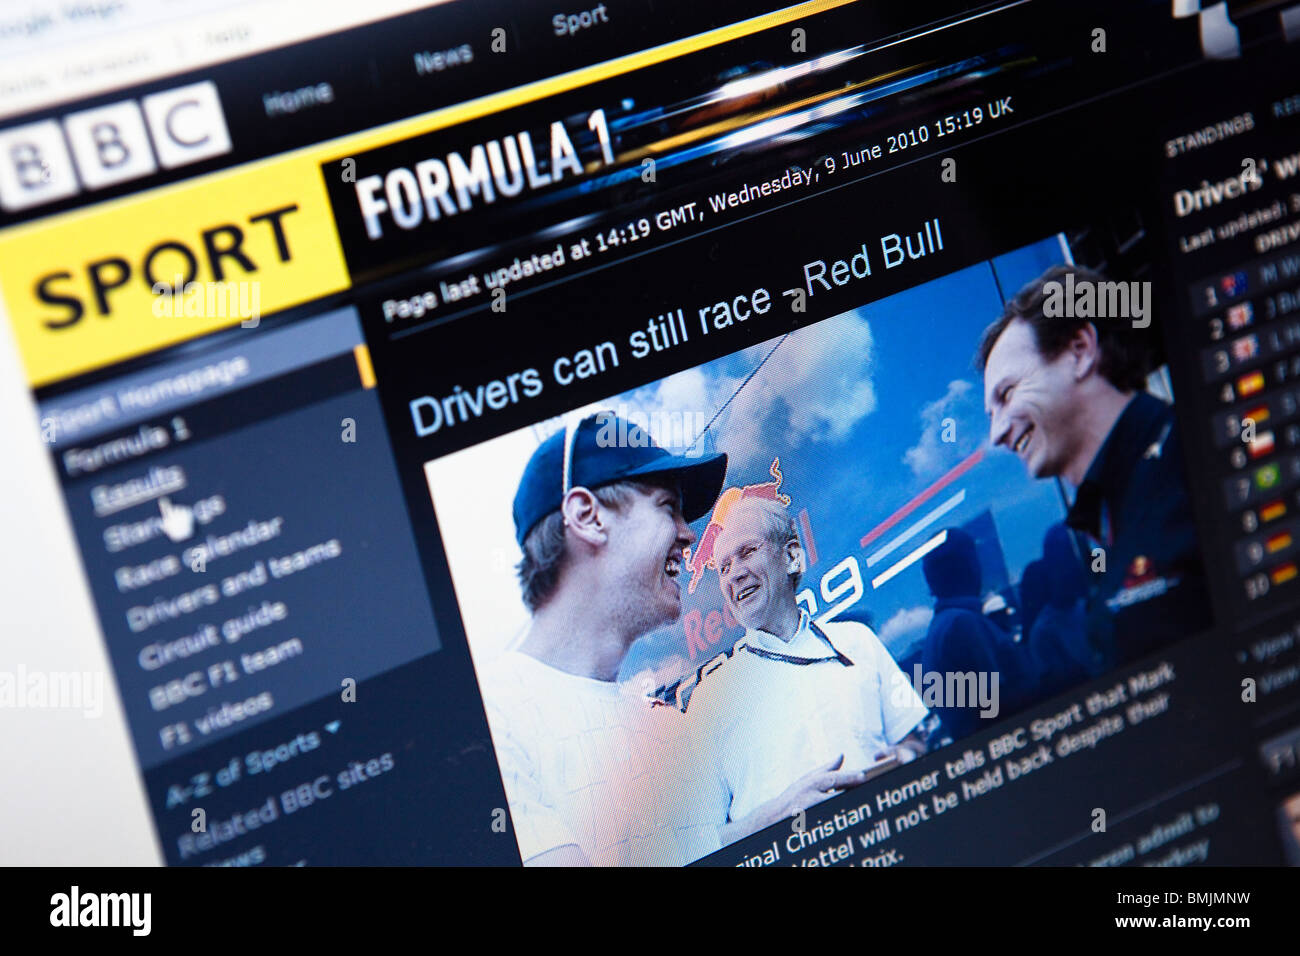 Close up of a computer monitor / screen showing the BBC Sport Formula One website - Stock Image